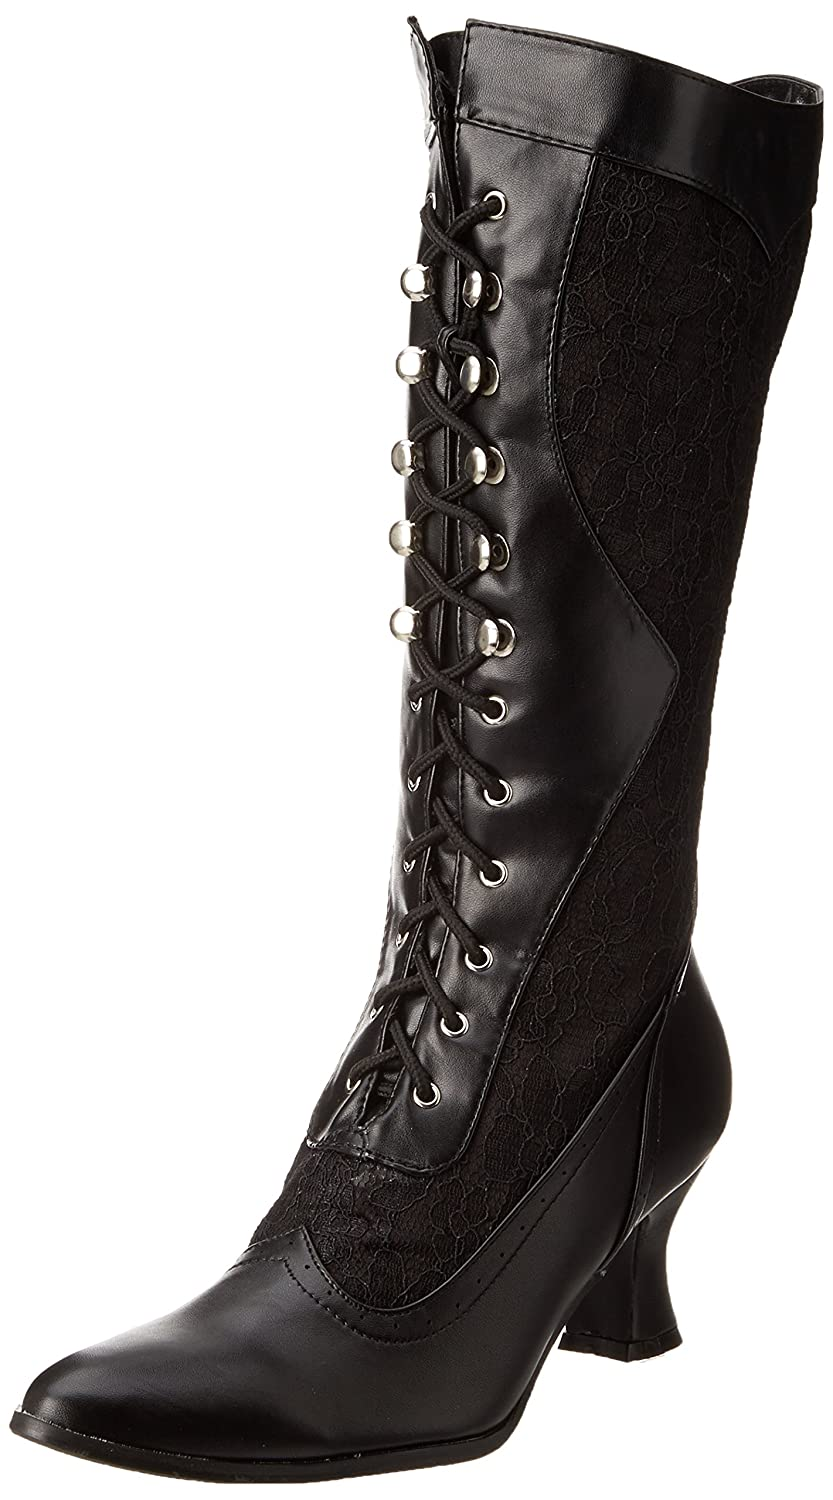 Vintage Boots, Granny Boots, Retro Boots Rebecca Lace Heel Boot $52.00 AT vintagedancer.com